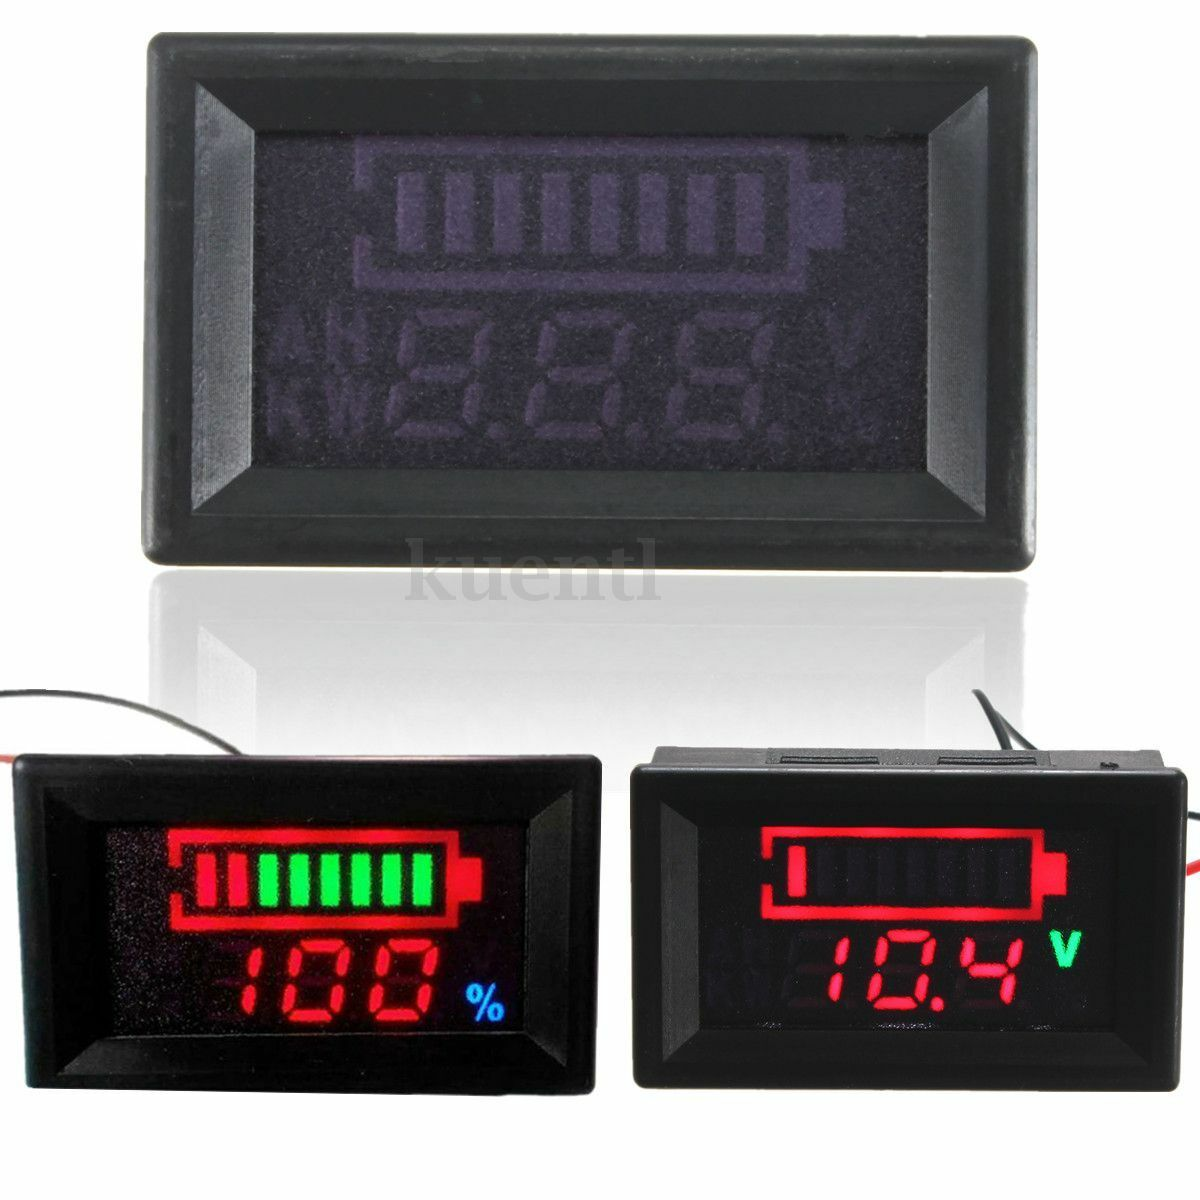 12v spannungsanzeige batterie anzeige tester led kfz auto lkw traktor boot neu eur 9 02. Black Bedroom Furniture Sets. Home Design Ideas